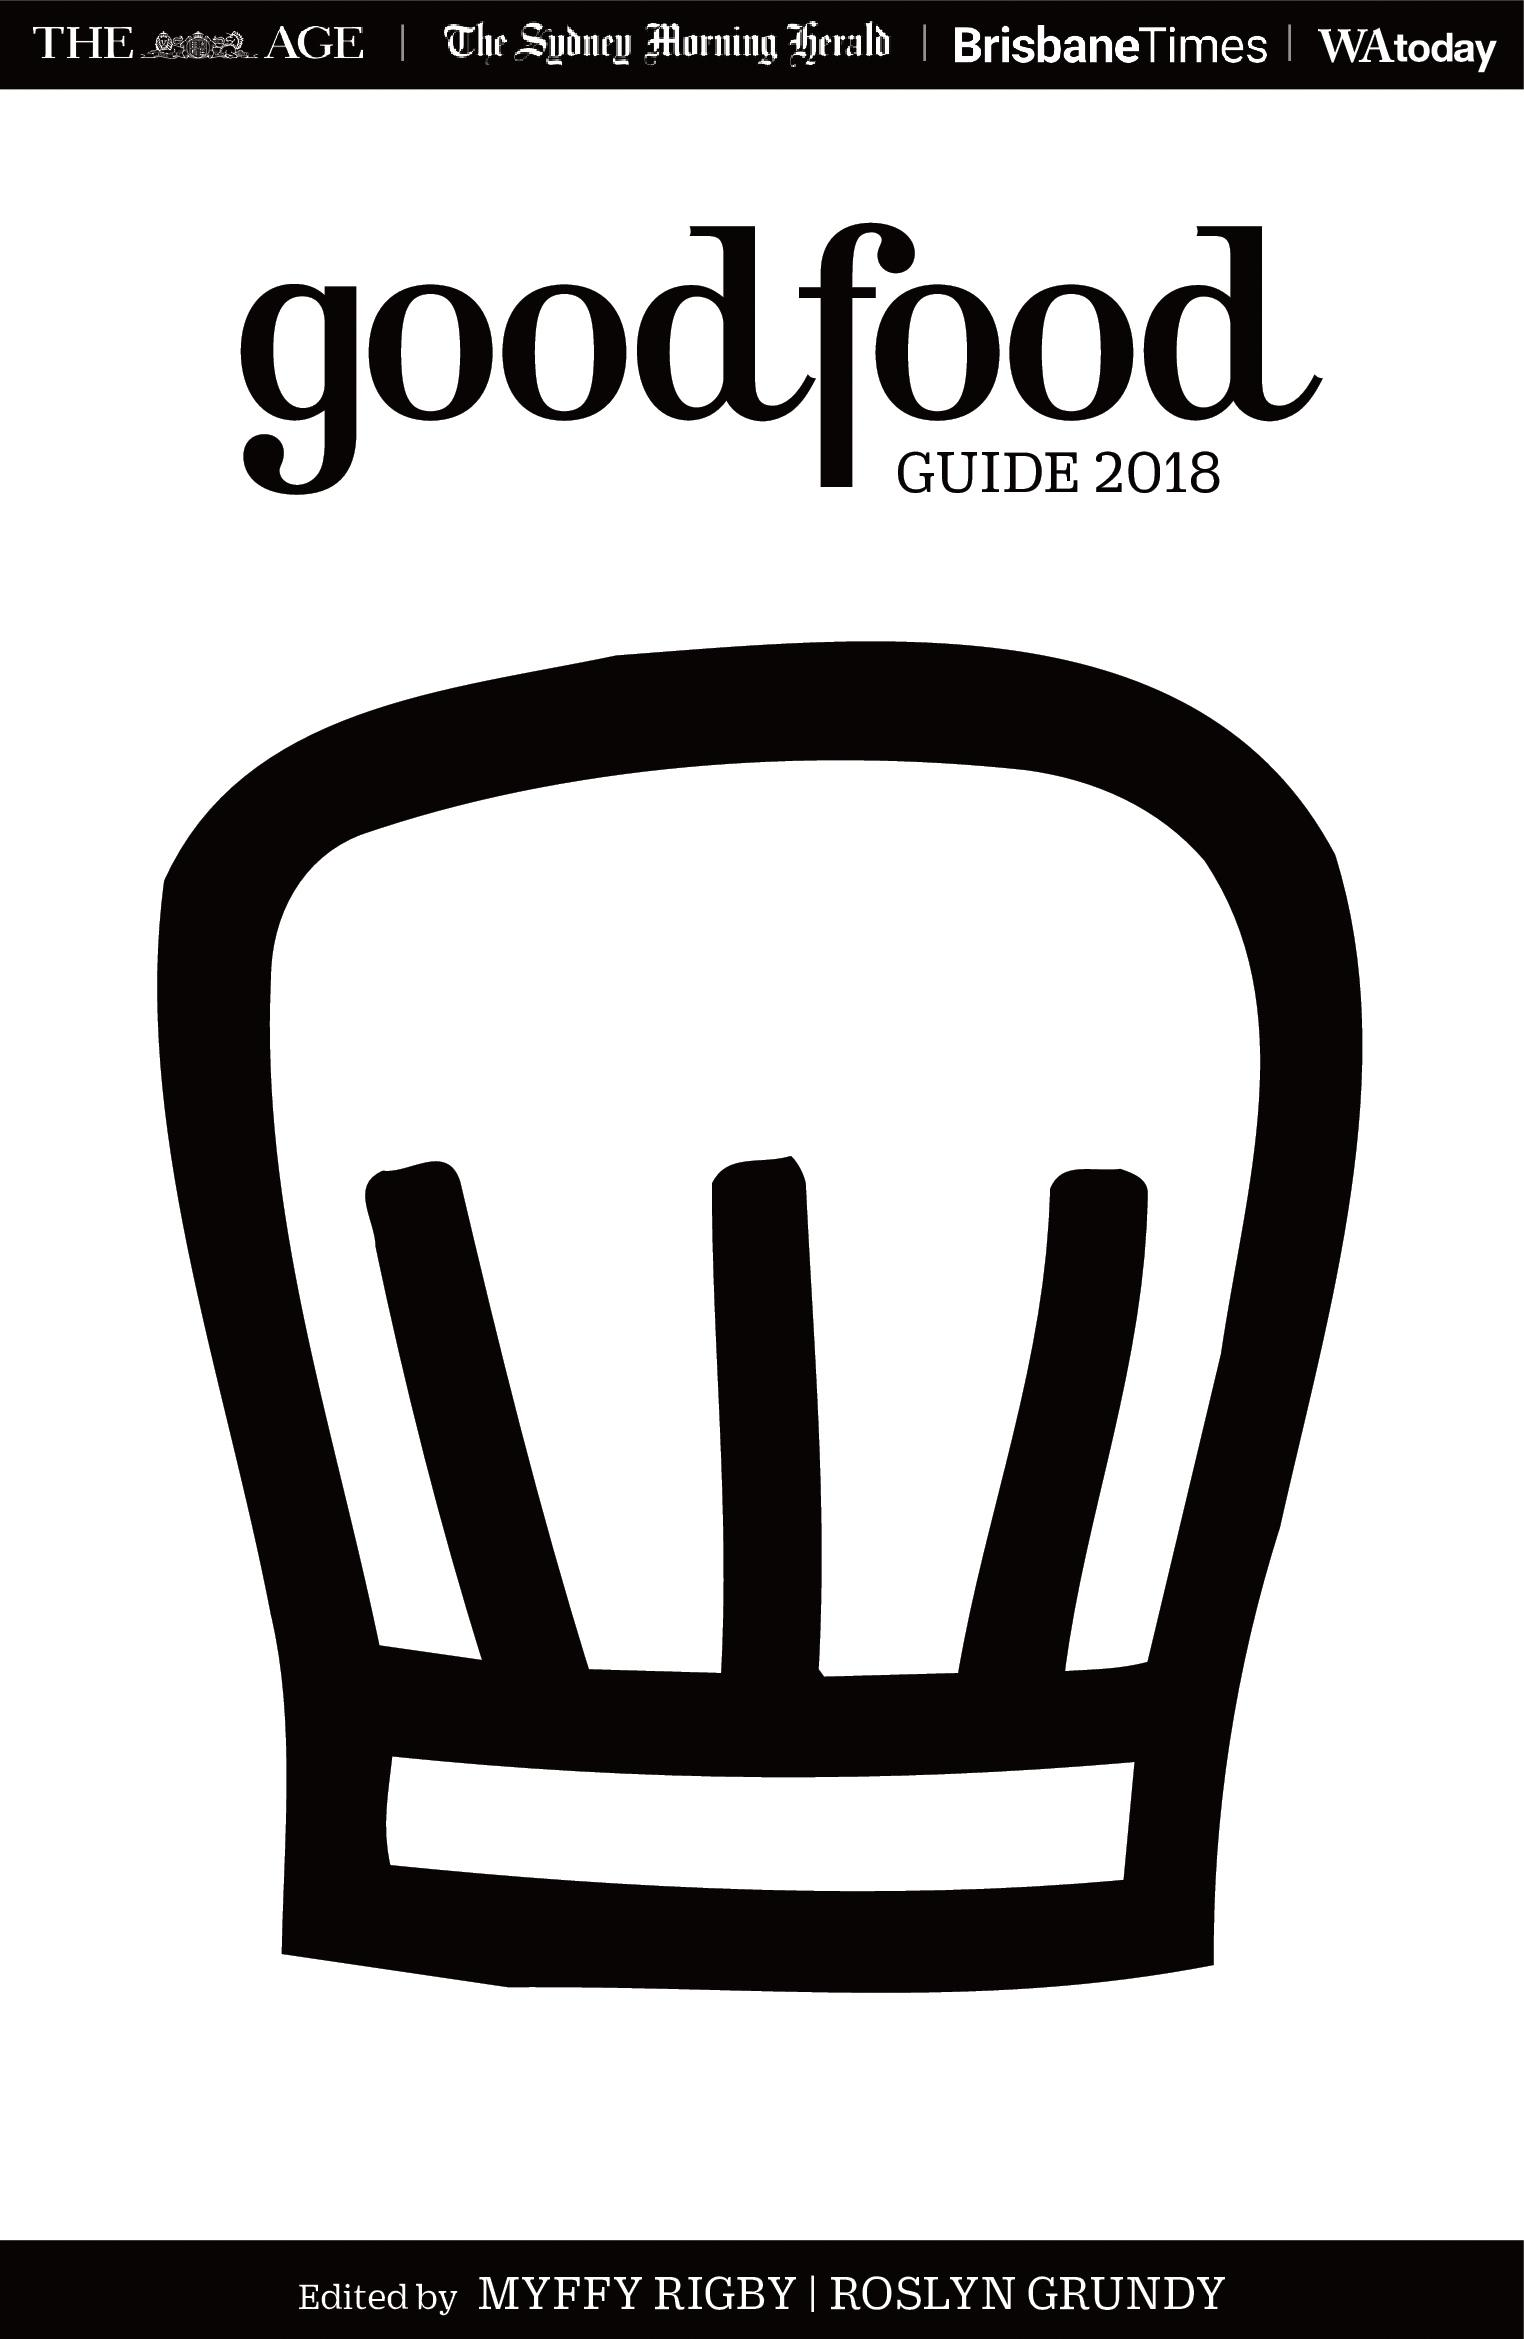 Winners of the 2016 good food awards eat drink play.